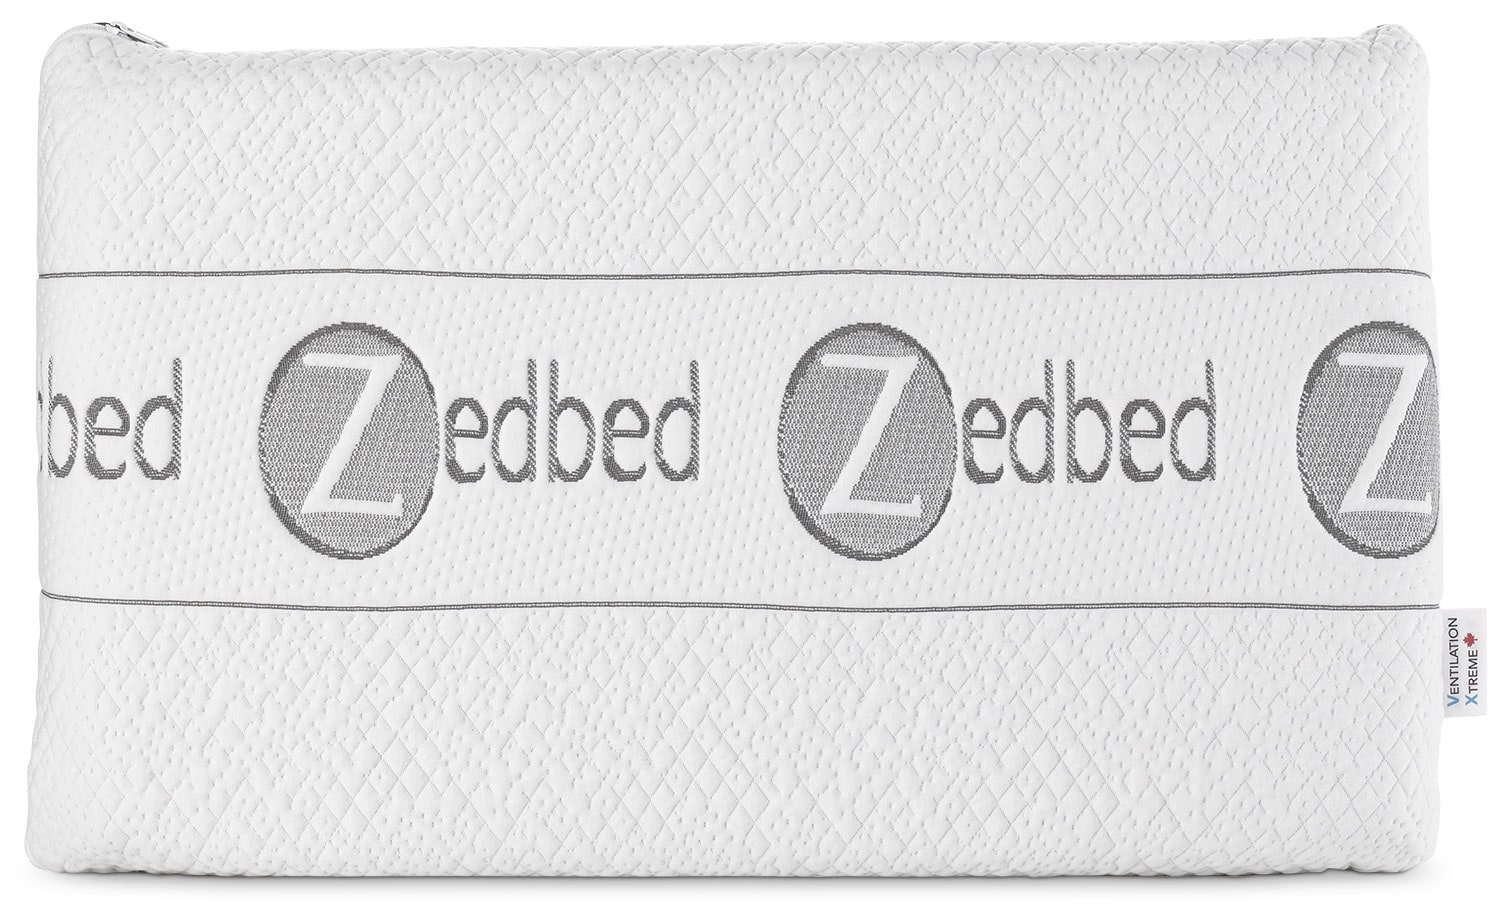 Mattresses and Bedding - Zedbed Cielo Standard-Size Pillow